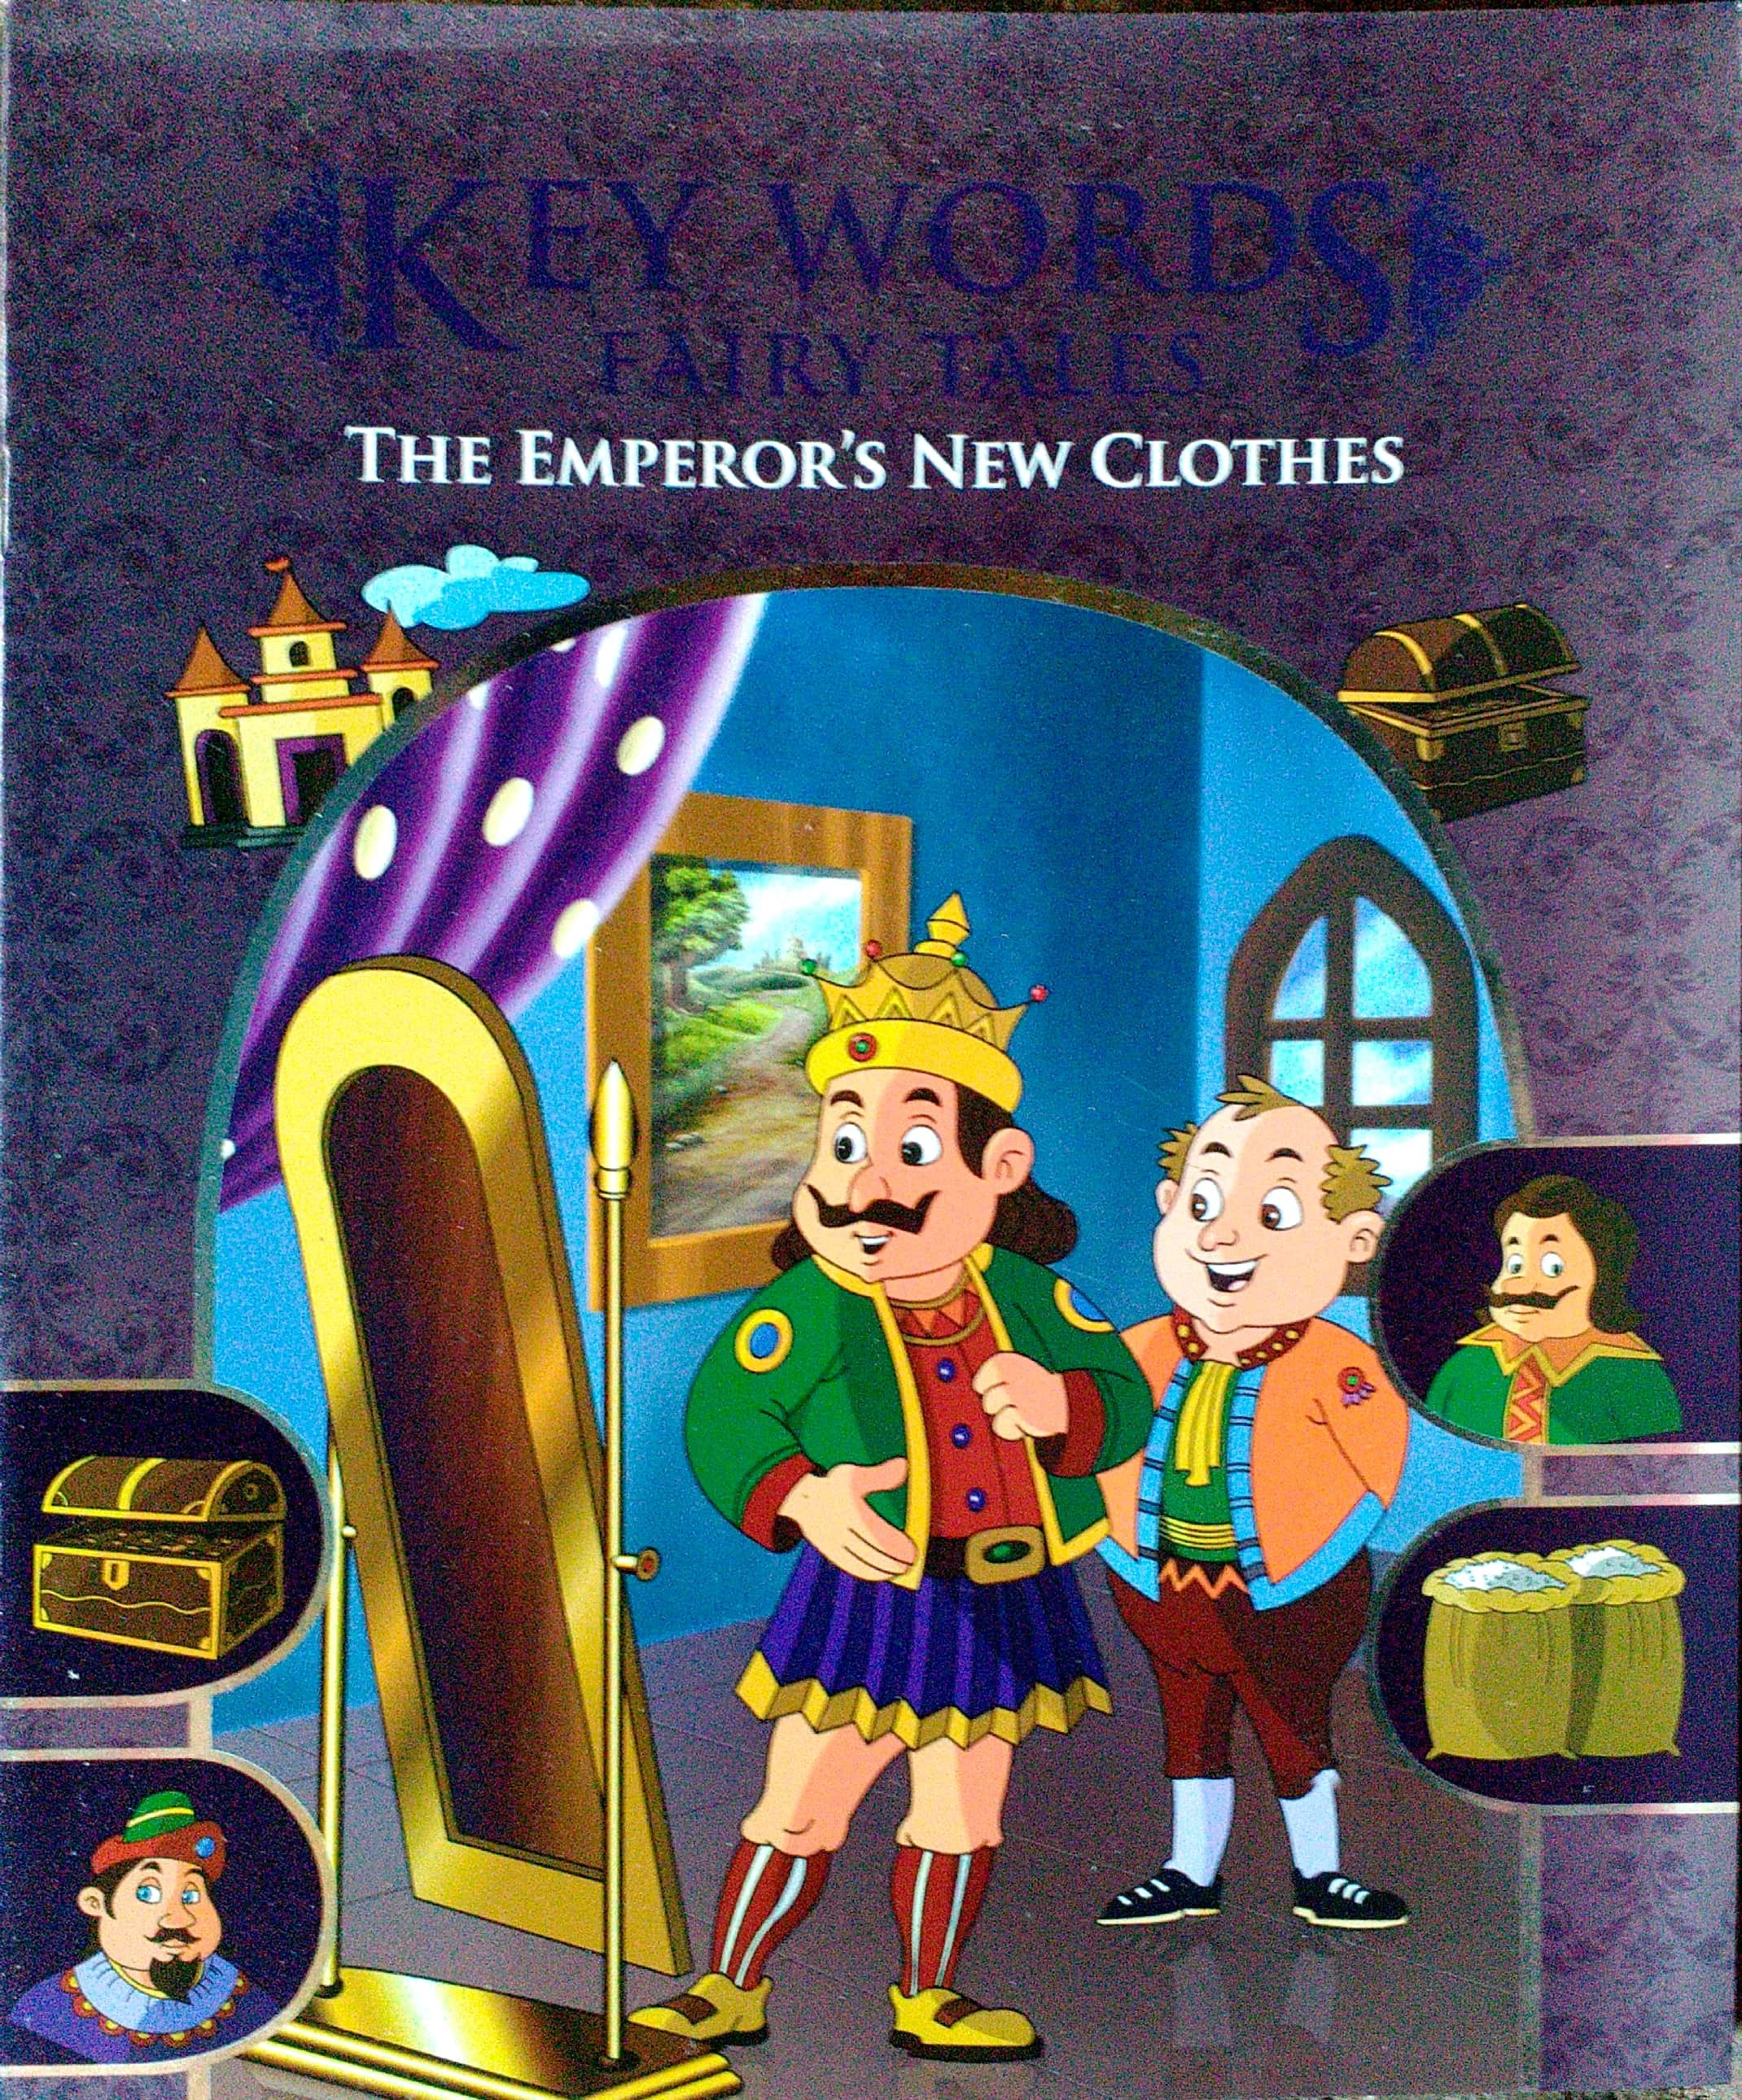 Routemybook Buy Key Words Fairy Tales The Emperors New Clothes Emperor